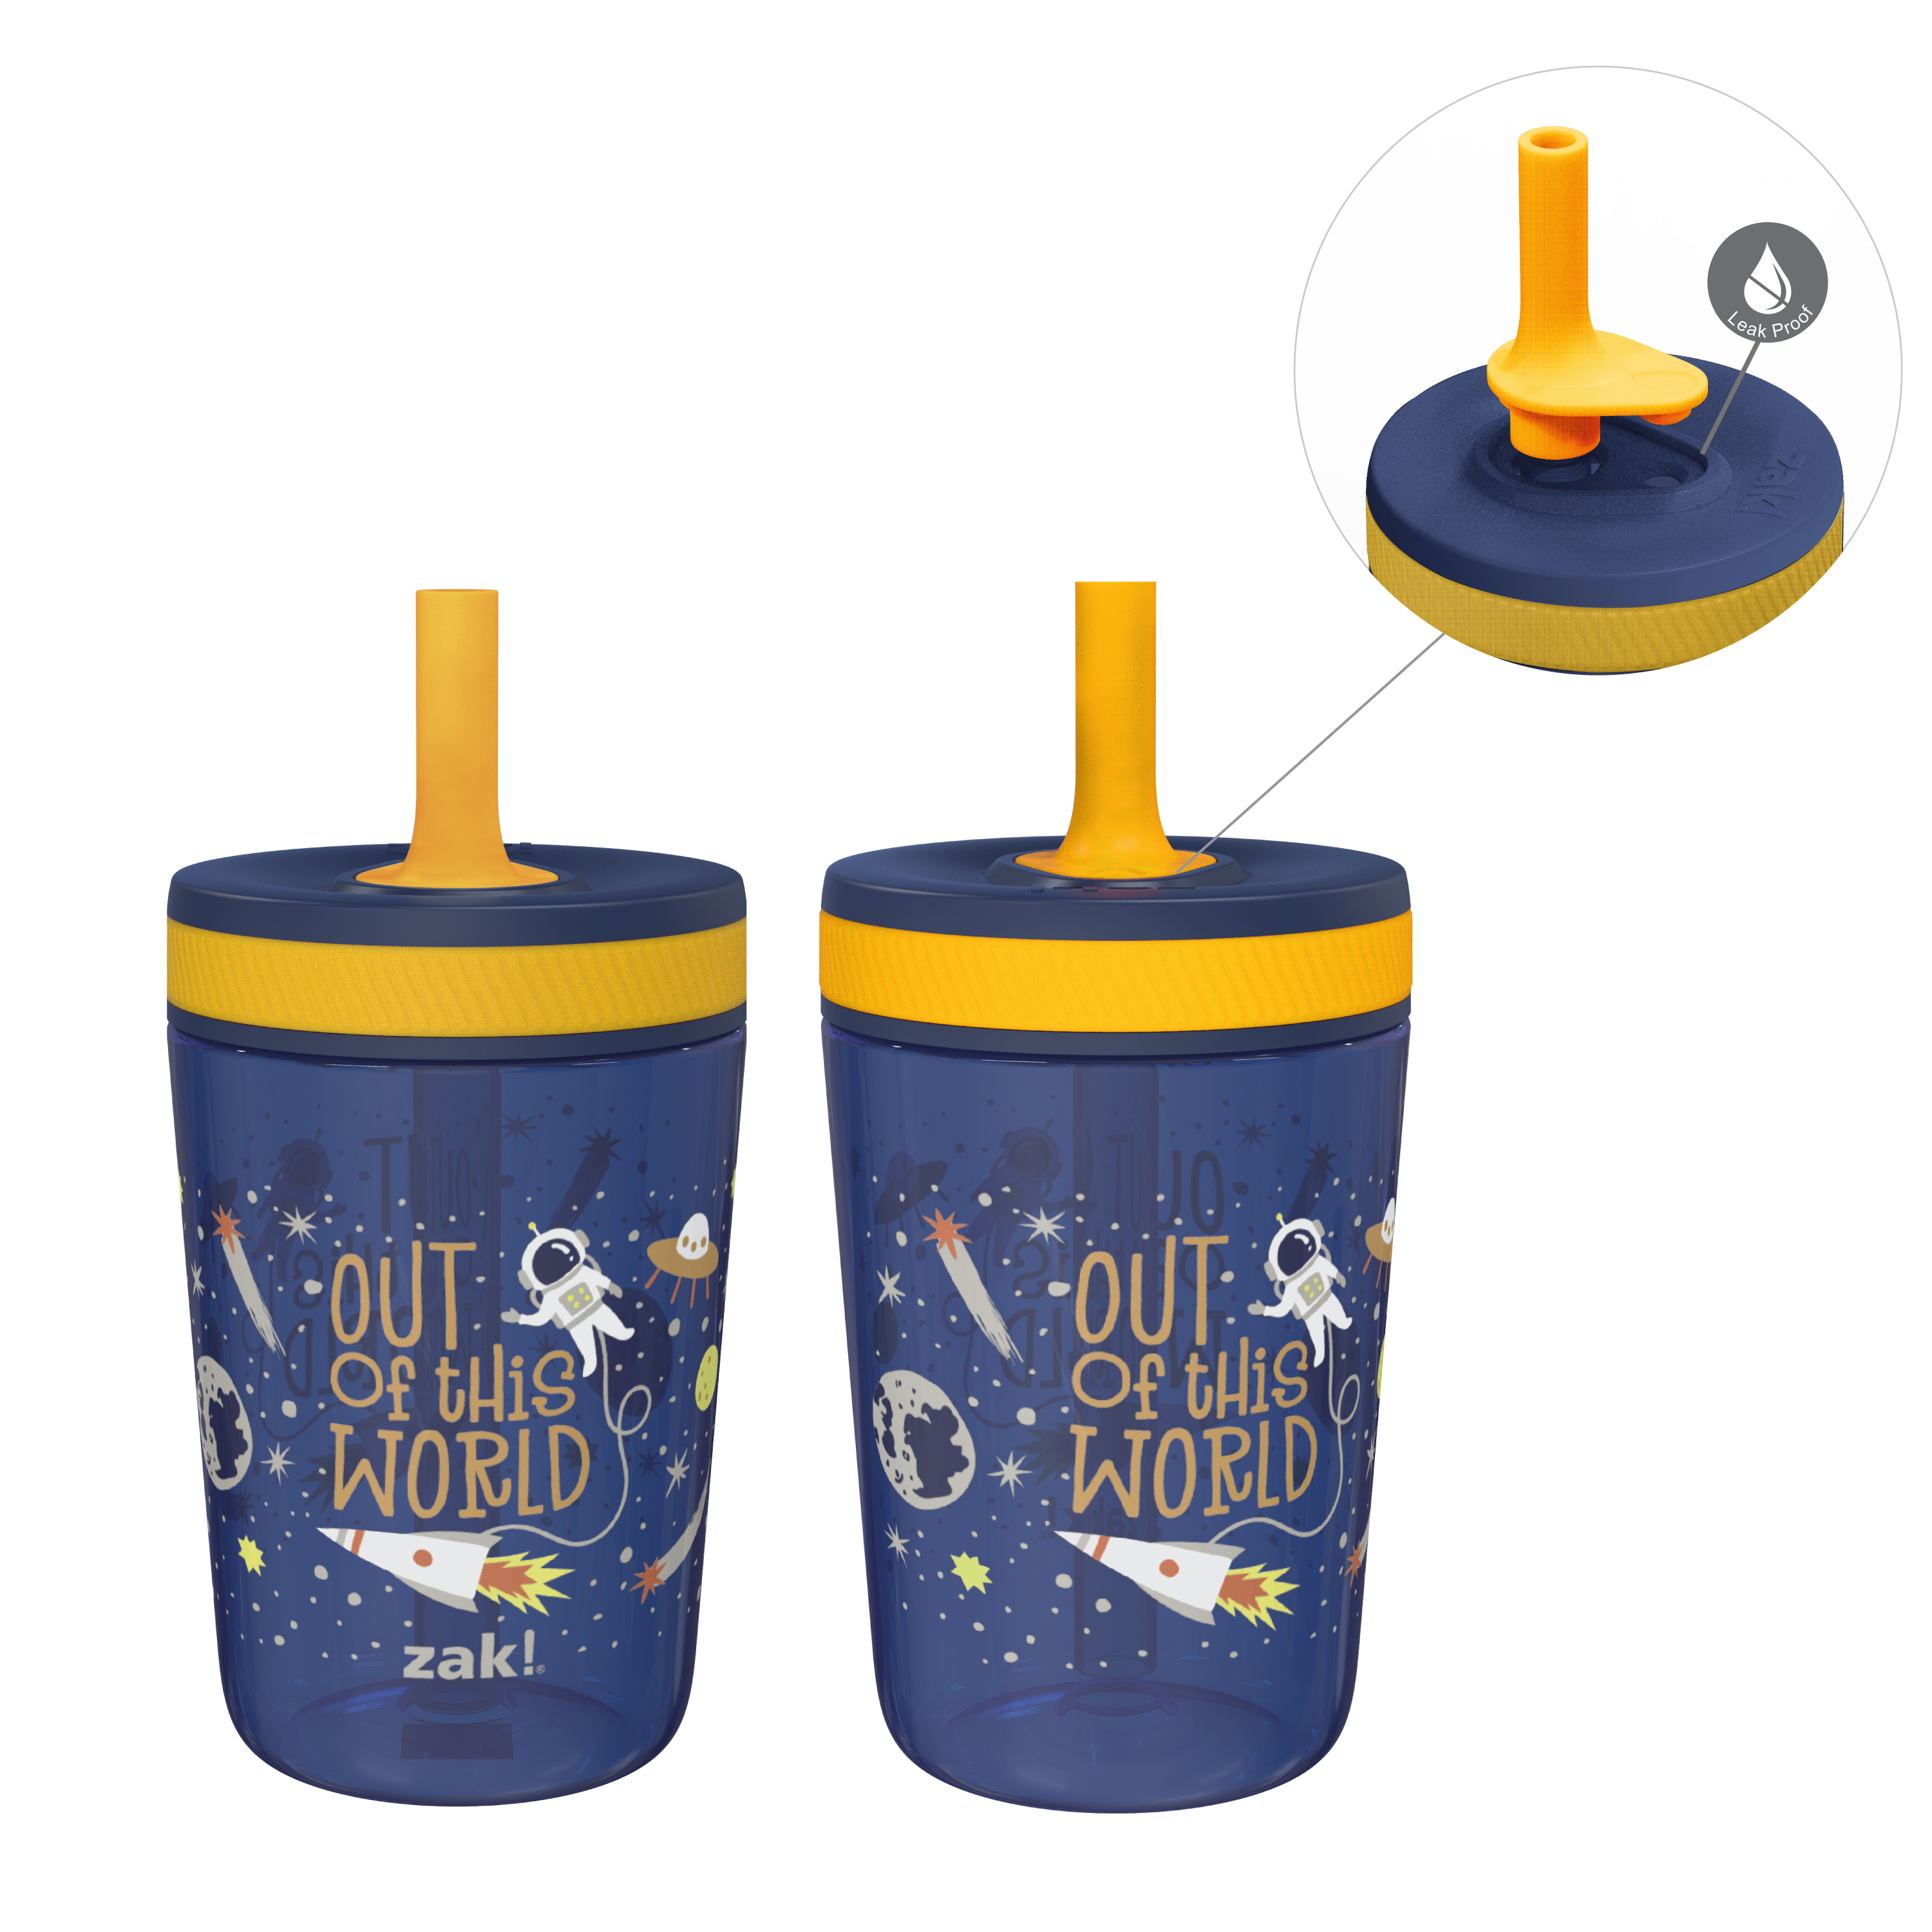 Zak Hydration 15  ounce Plastic Tumbler with Lid and Straw, Outer Space, 2-piece set image